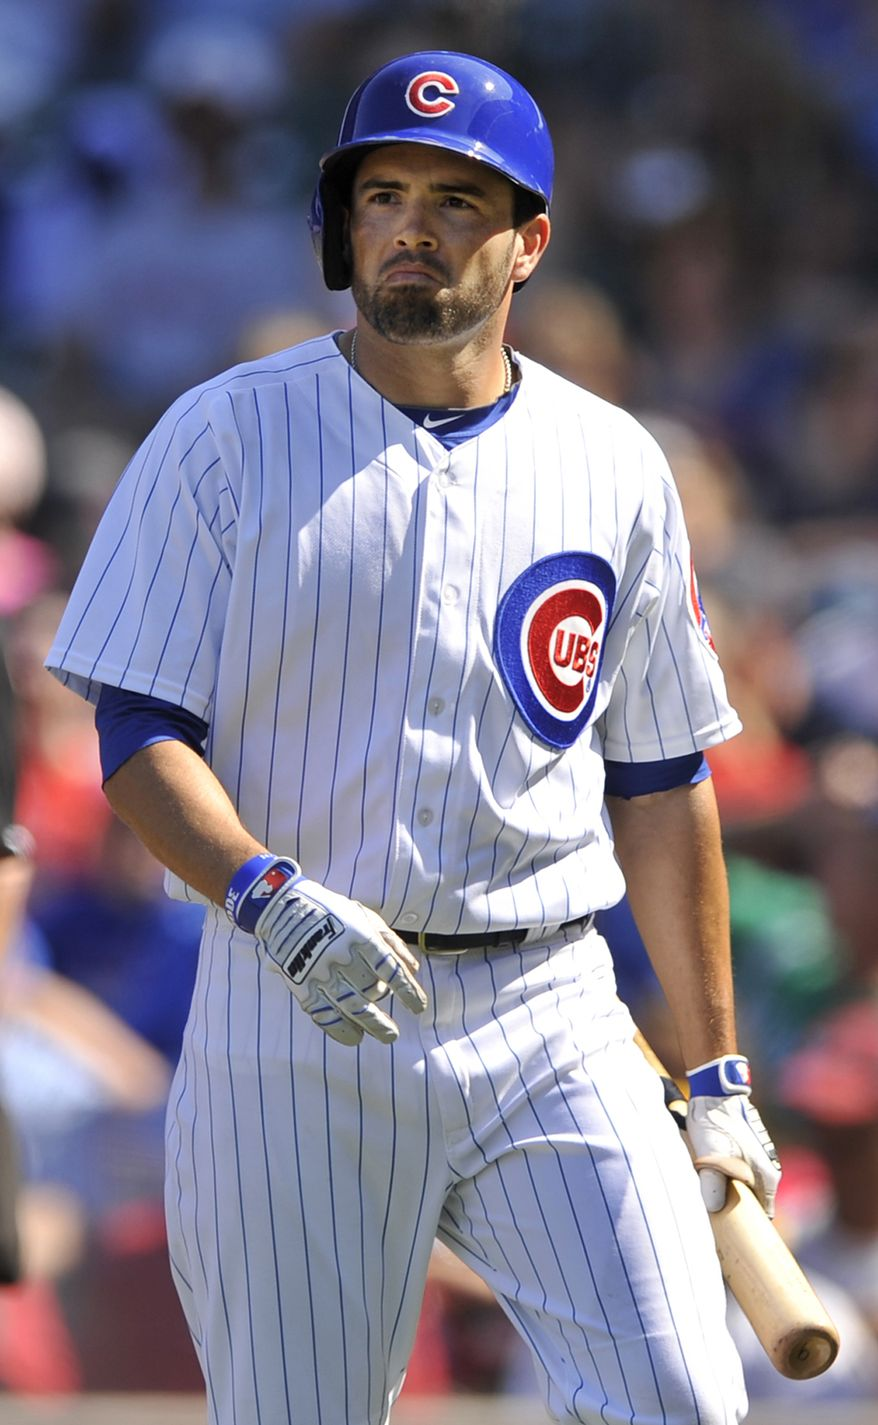 Chicago Cubs' David DeJesus reacts after striking out during the first inning of a baseball game against the St. Louis Cardinals in Chicago, Saturday, Aug. 17, 2013. (AP Photo/Paul Beaty)